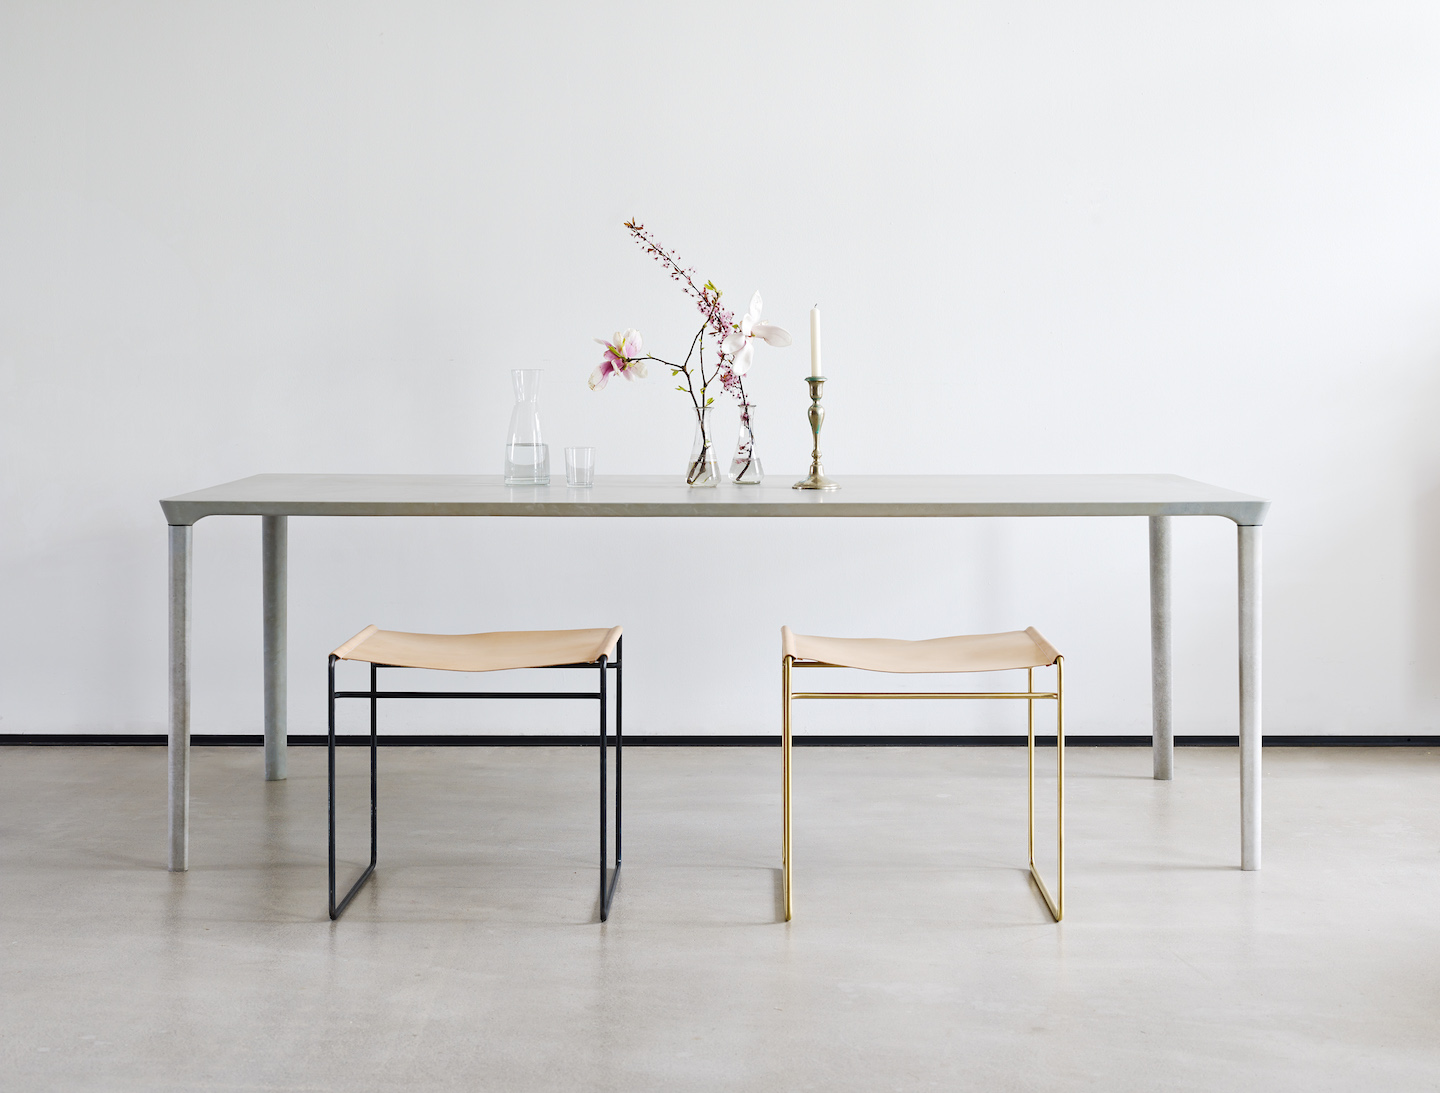 Nina_Mair_Concrete_Table_01